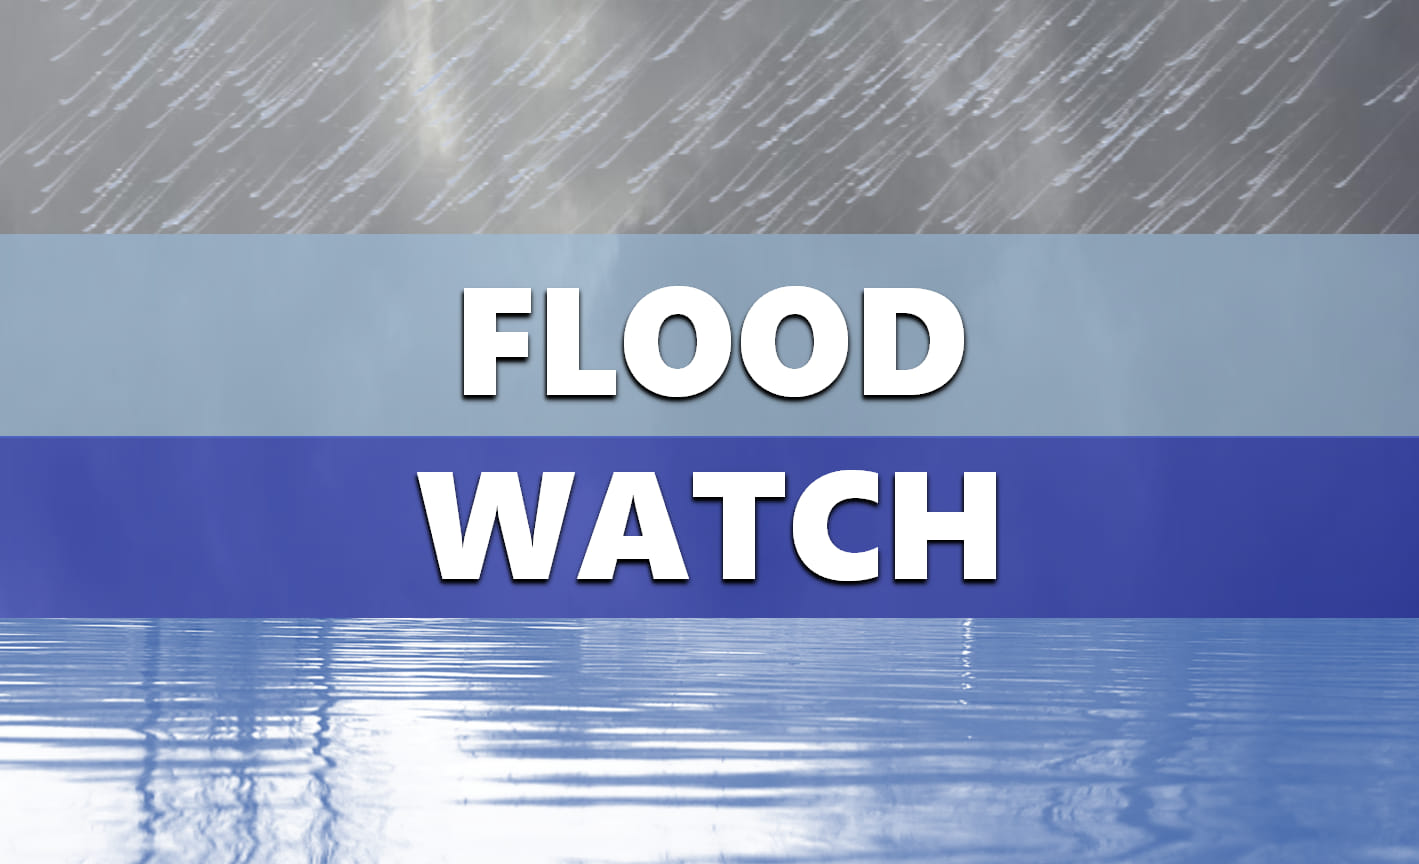 Flood Watch Issued, Dubois Co. Could See Up to 3 Inches of Rain, the NWS Warns